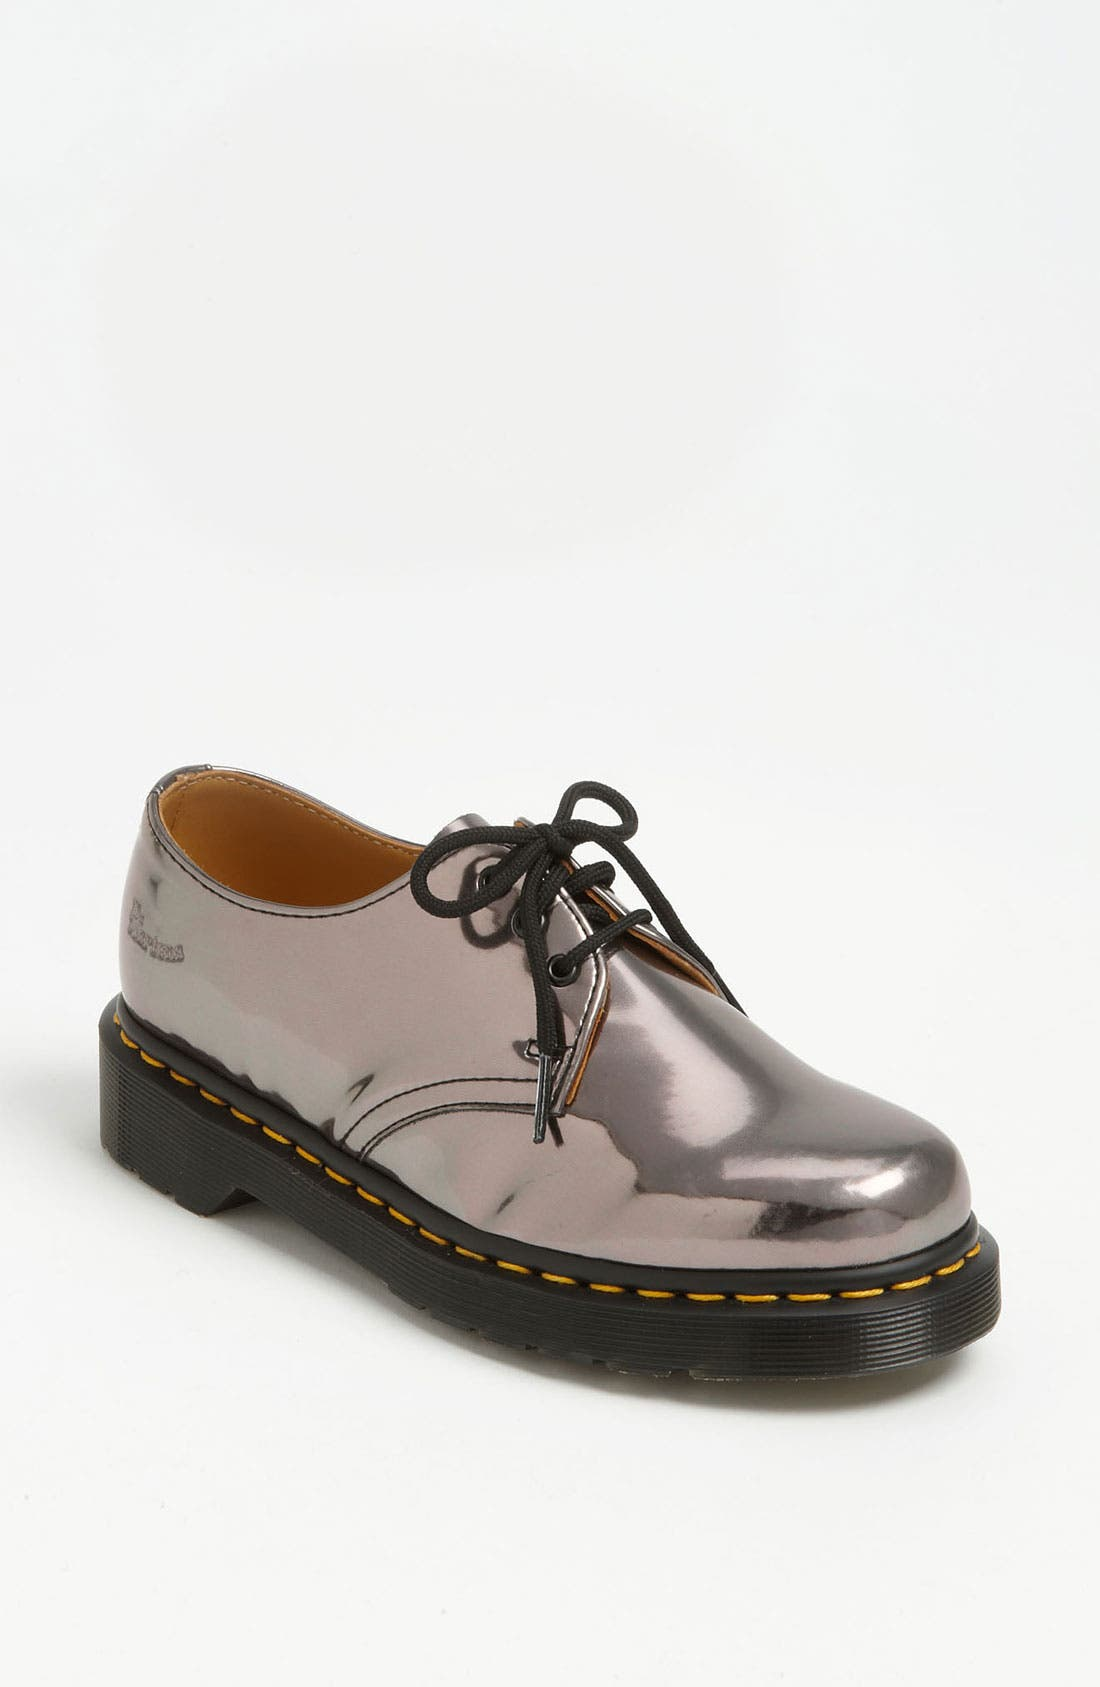 Alternate Image 1 Selected - Dr. Martens 'Koram' Oxford